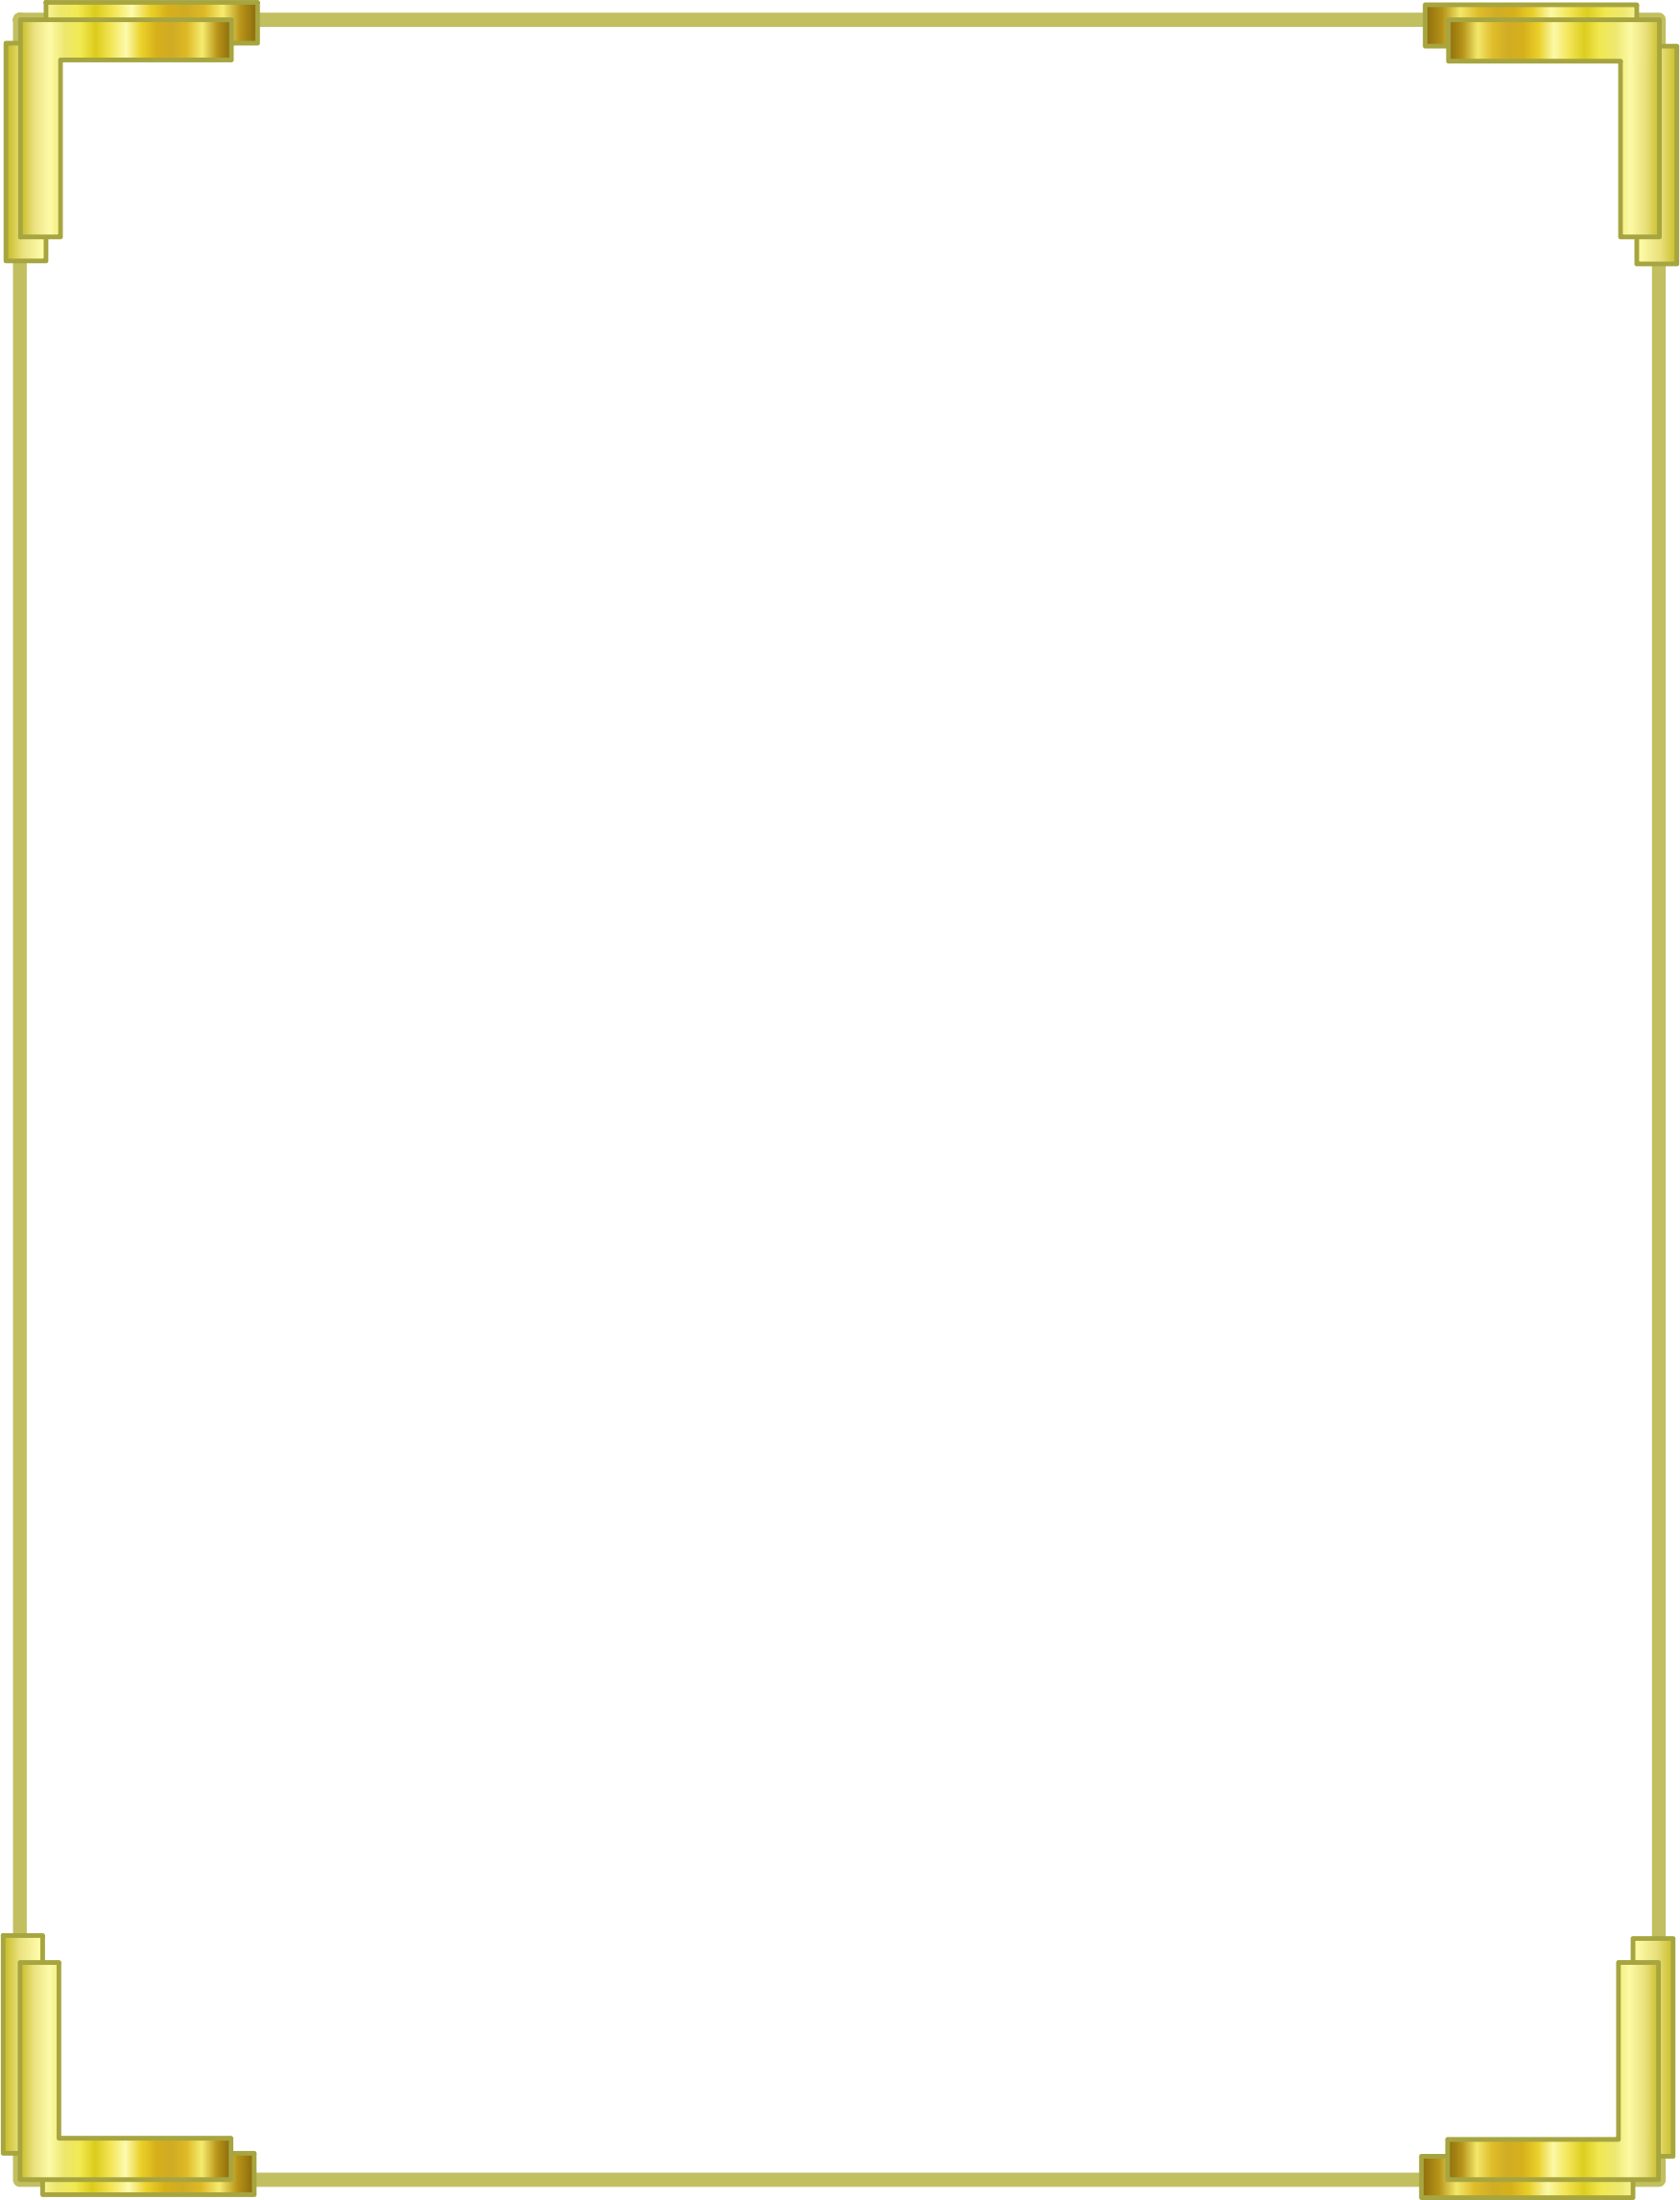 Photo border png. Gold frame